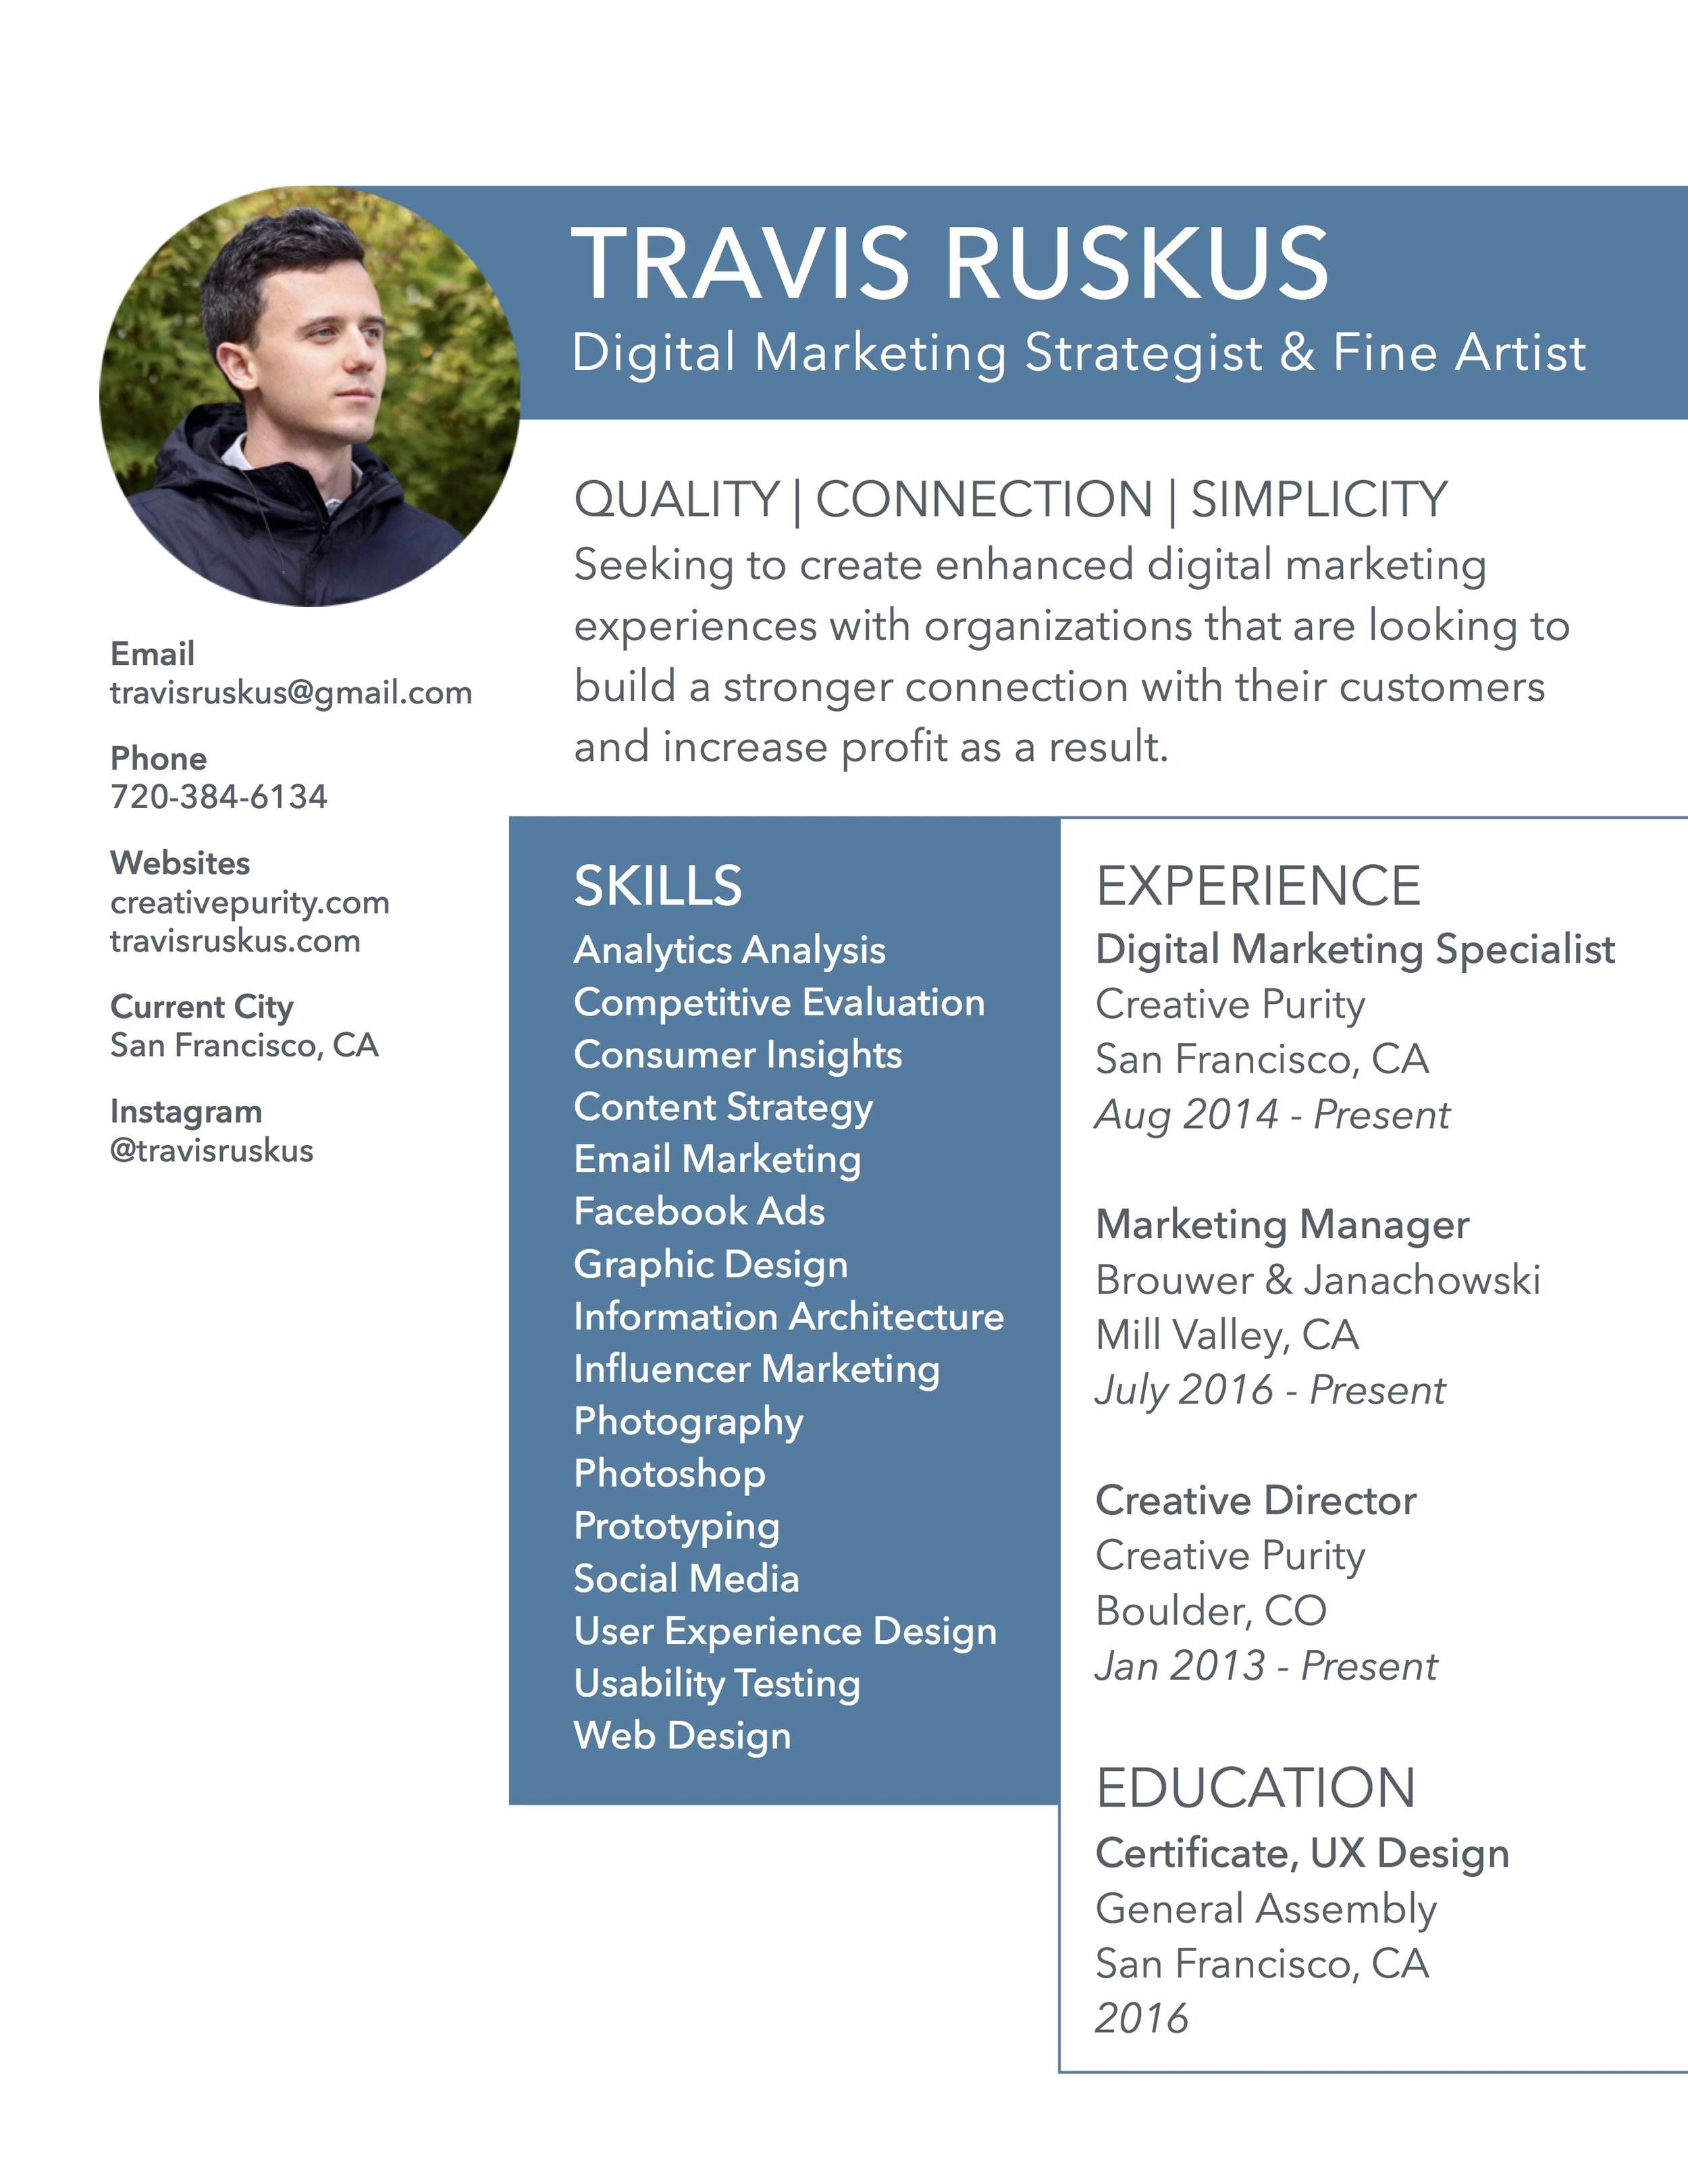 Travis Ruskus Resume.jpg